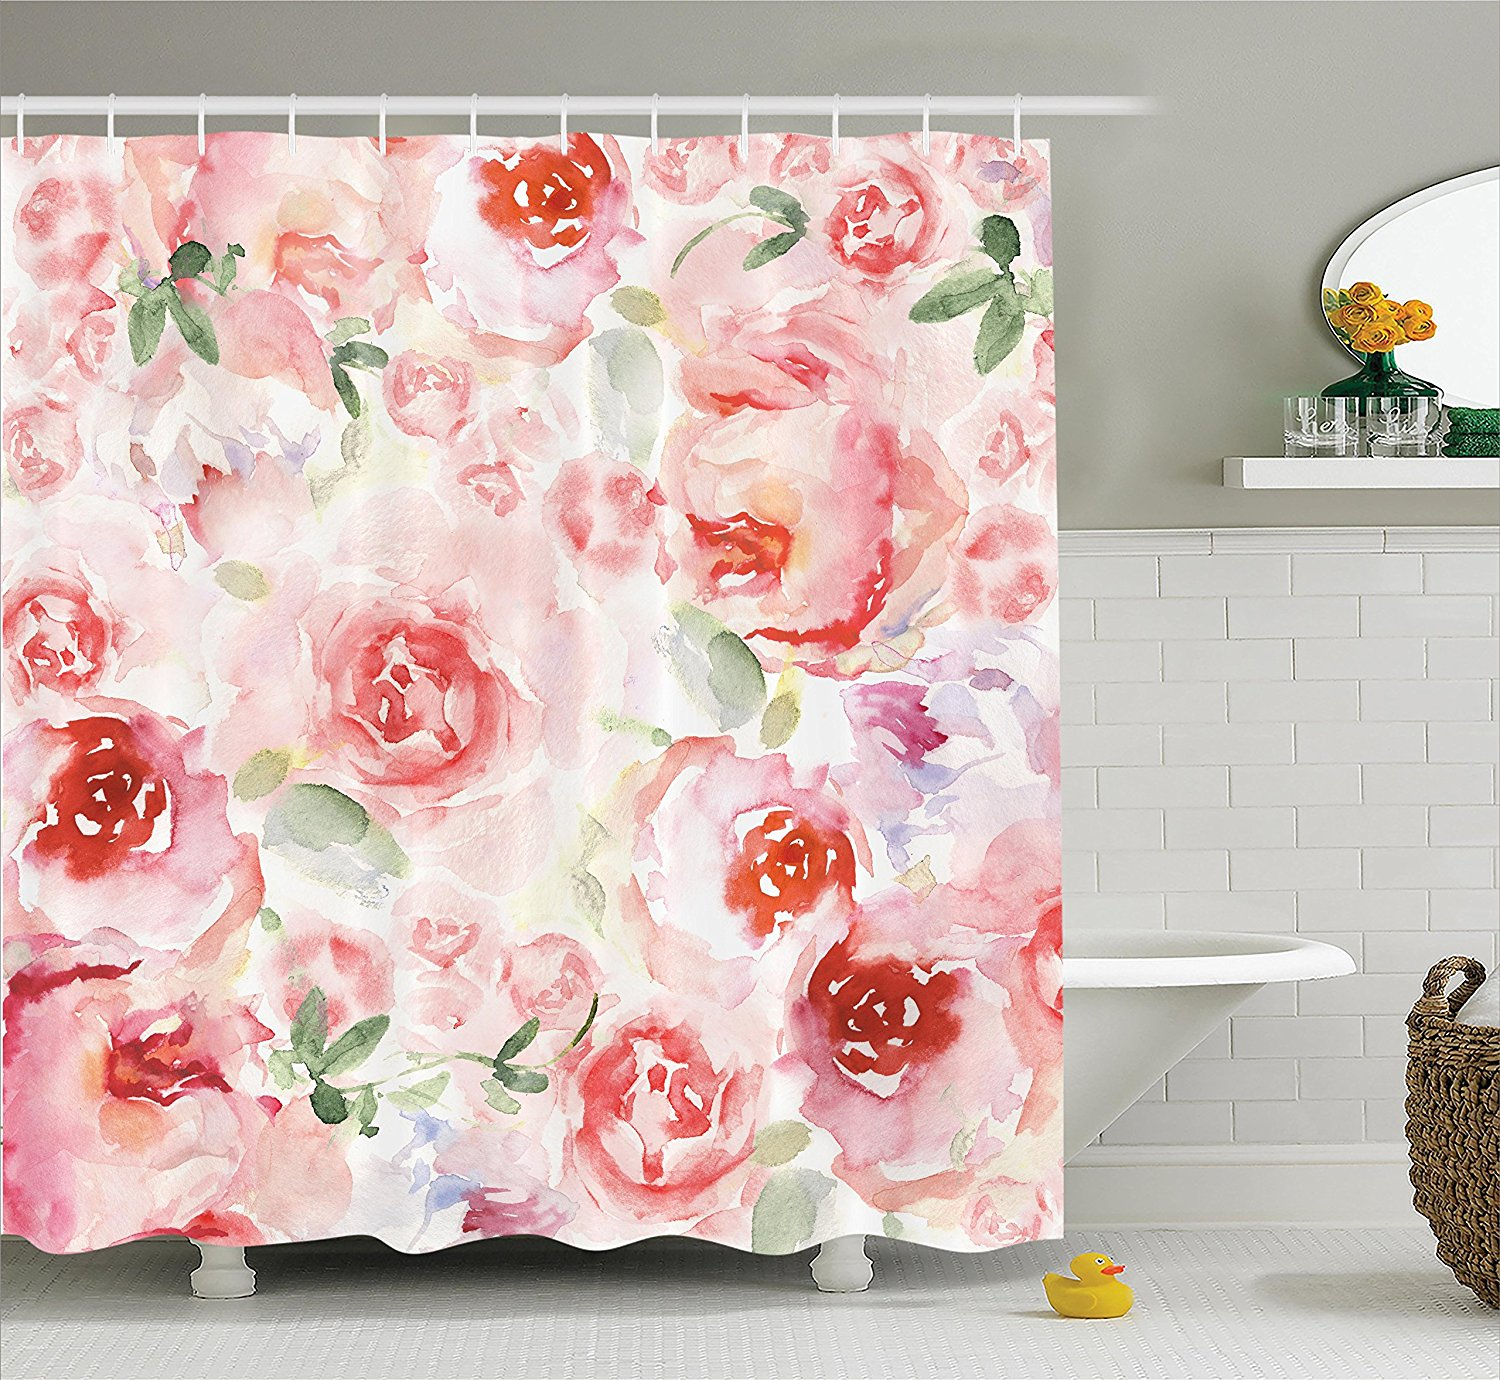 Memory Home Watercolor Flower Shower Curtain Decor Pink ...